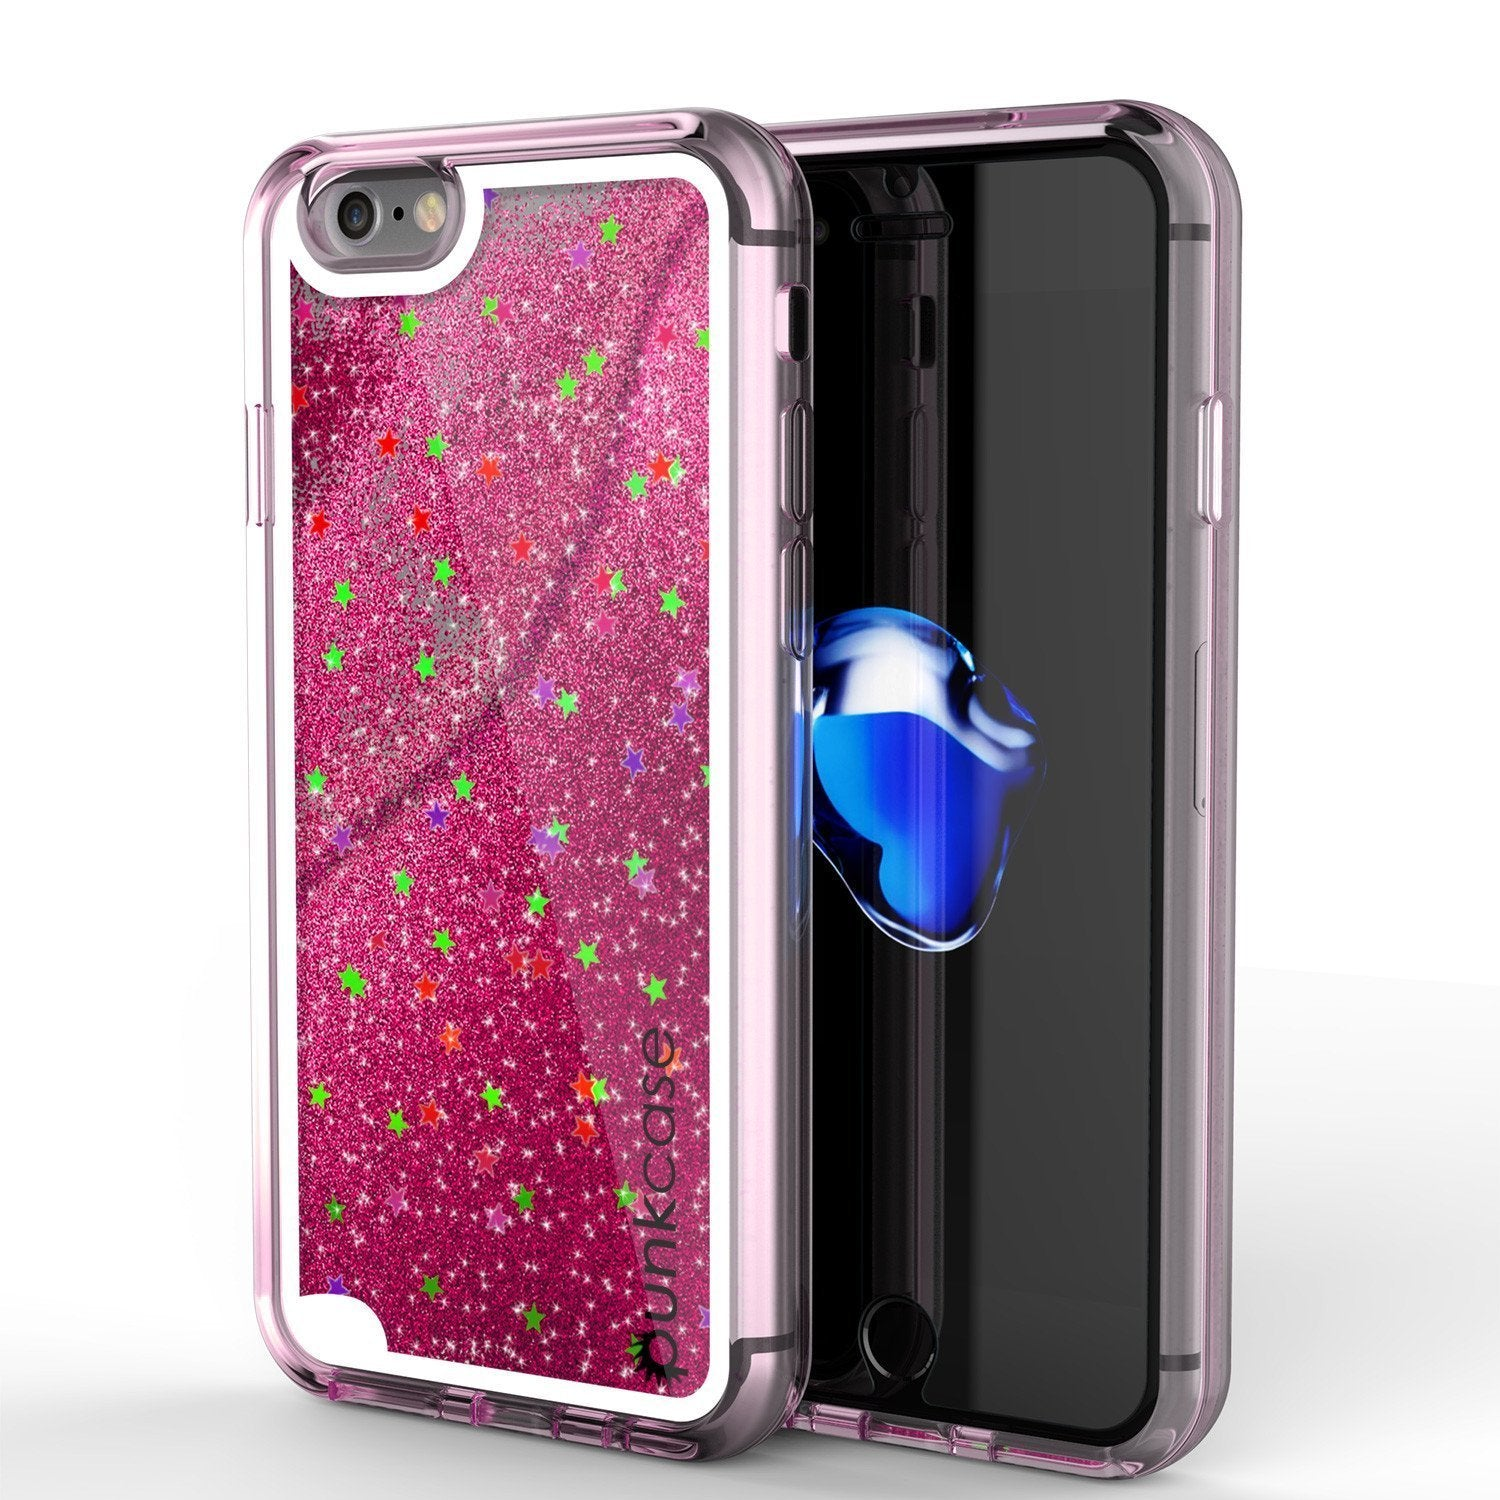 "iPhone SE (4.7"") Case, PunkCase LIQUID Pink Series, Protective Dual Layer Floating Glitter Cover"